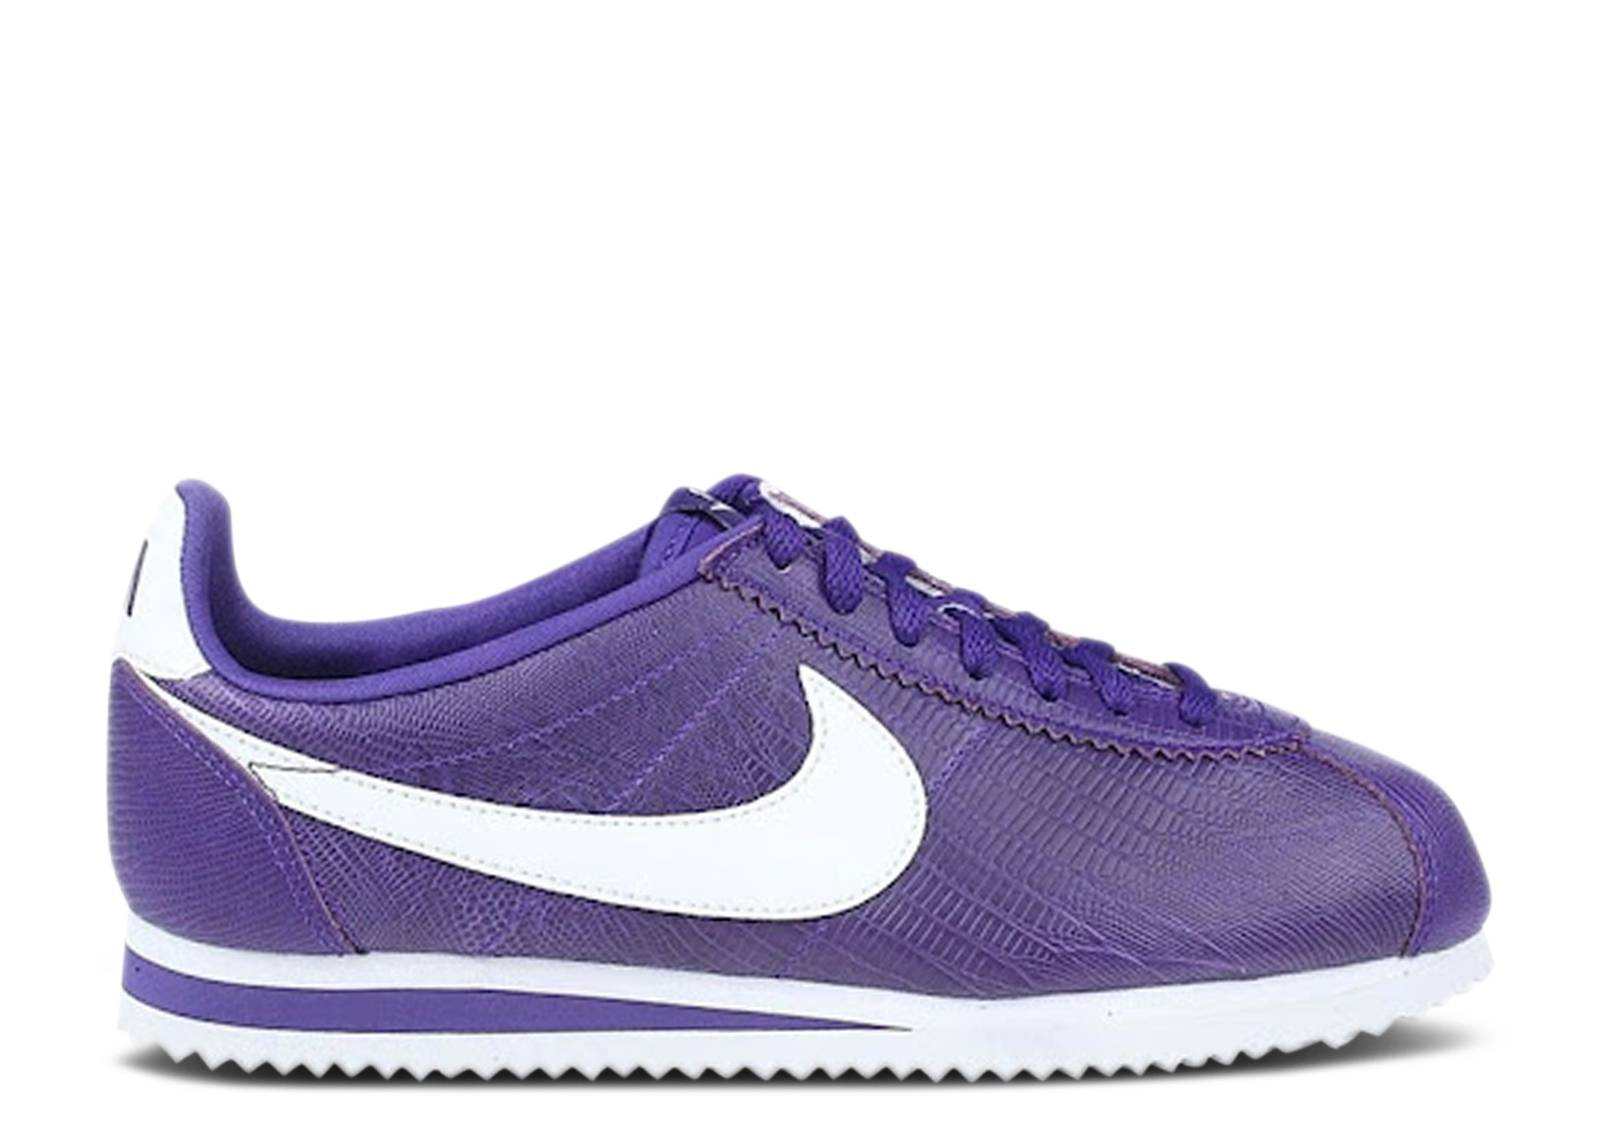 new arrival f37f9 03cf3 nike. Classic Cortez Leather